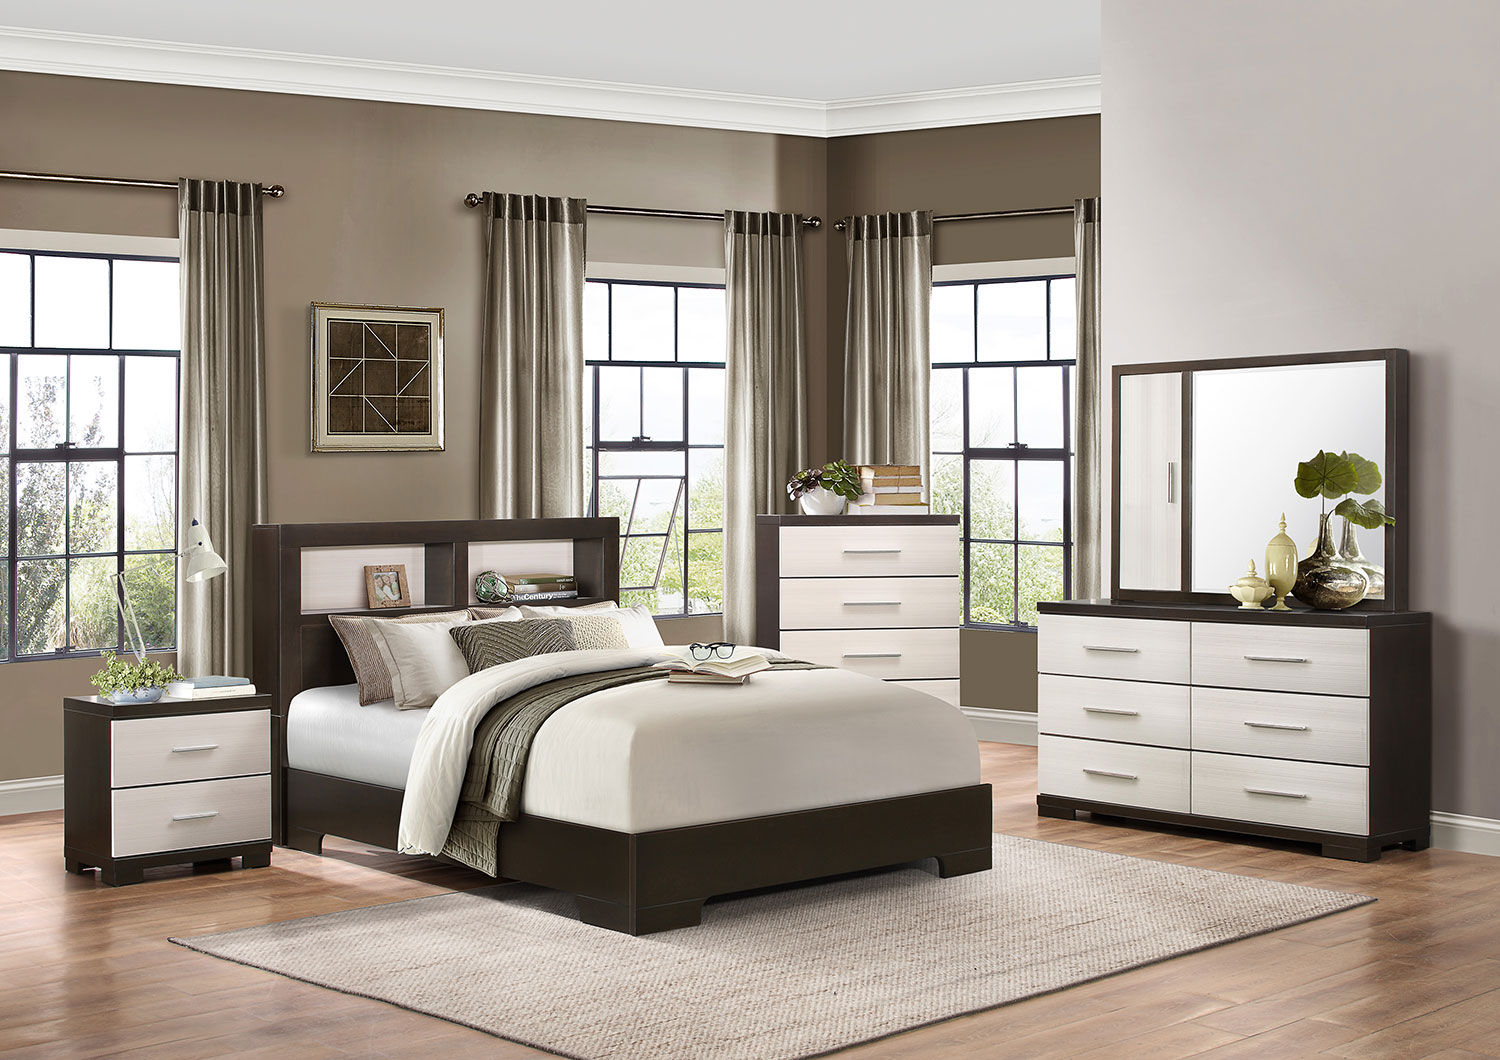 Homelegance Pell Low Profile Storage Bookcase Bedroom Set - Two-tone Espresso/White